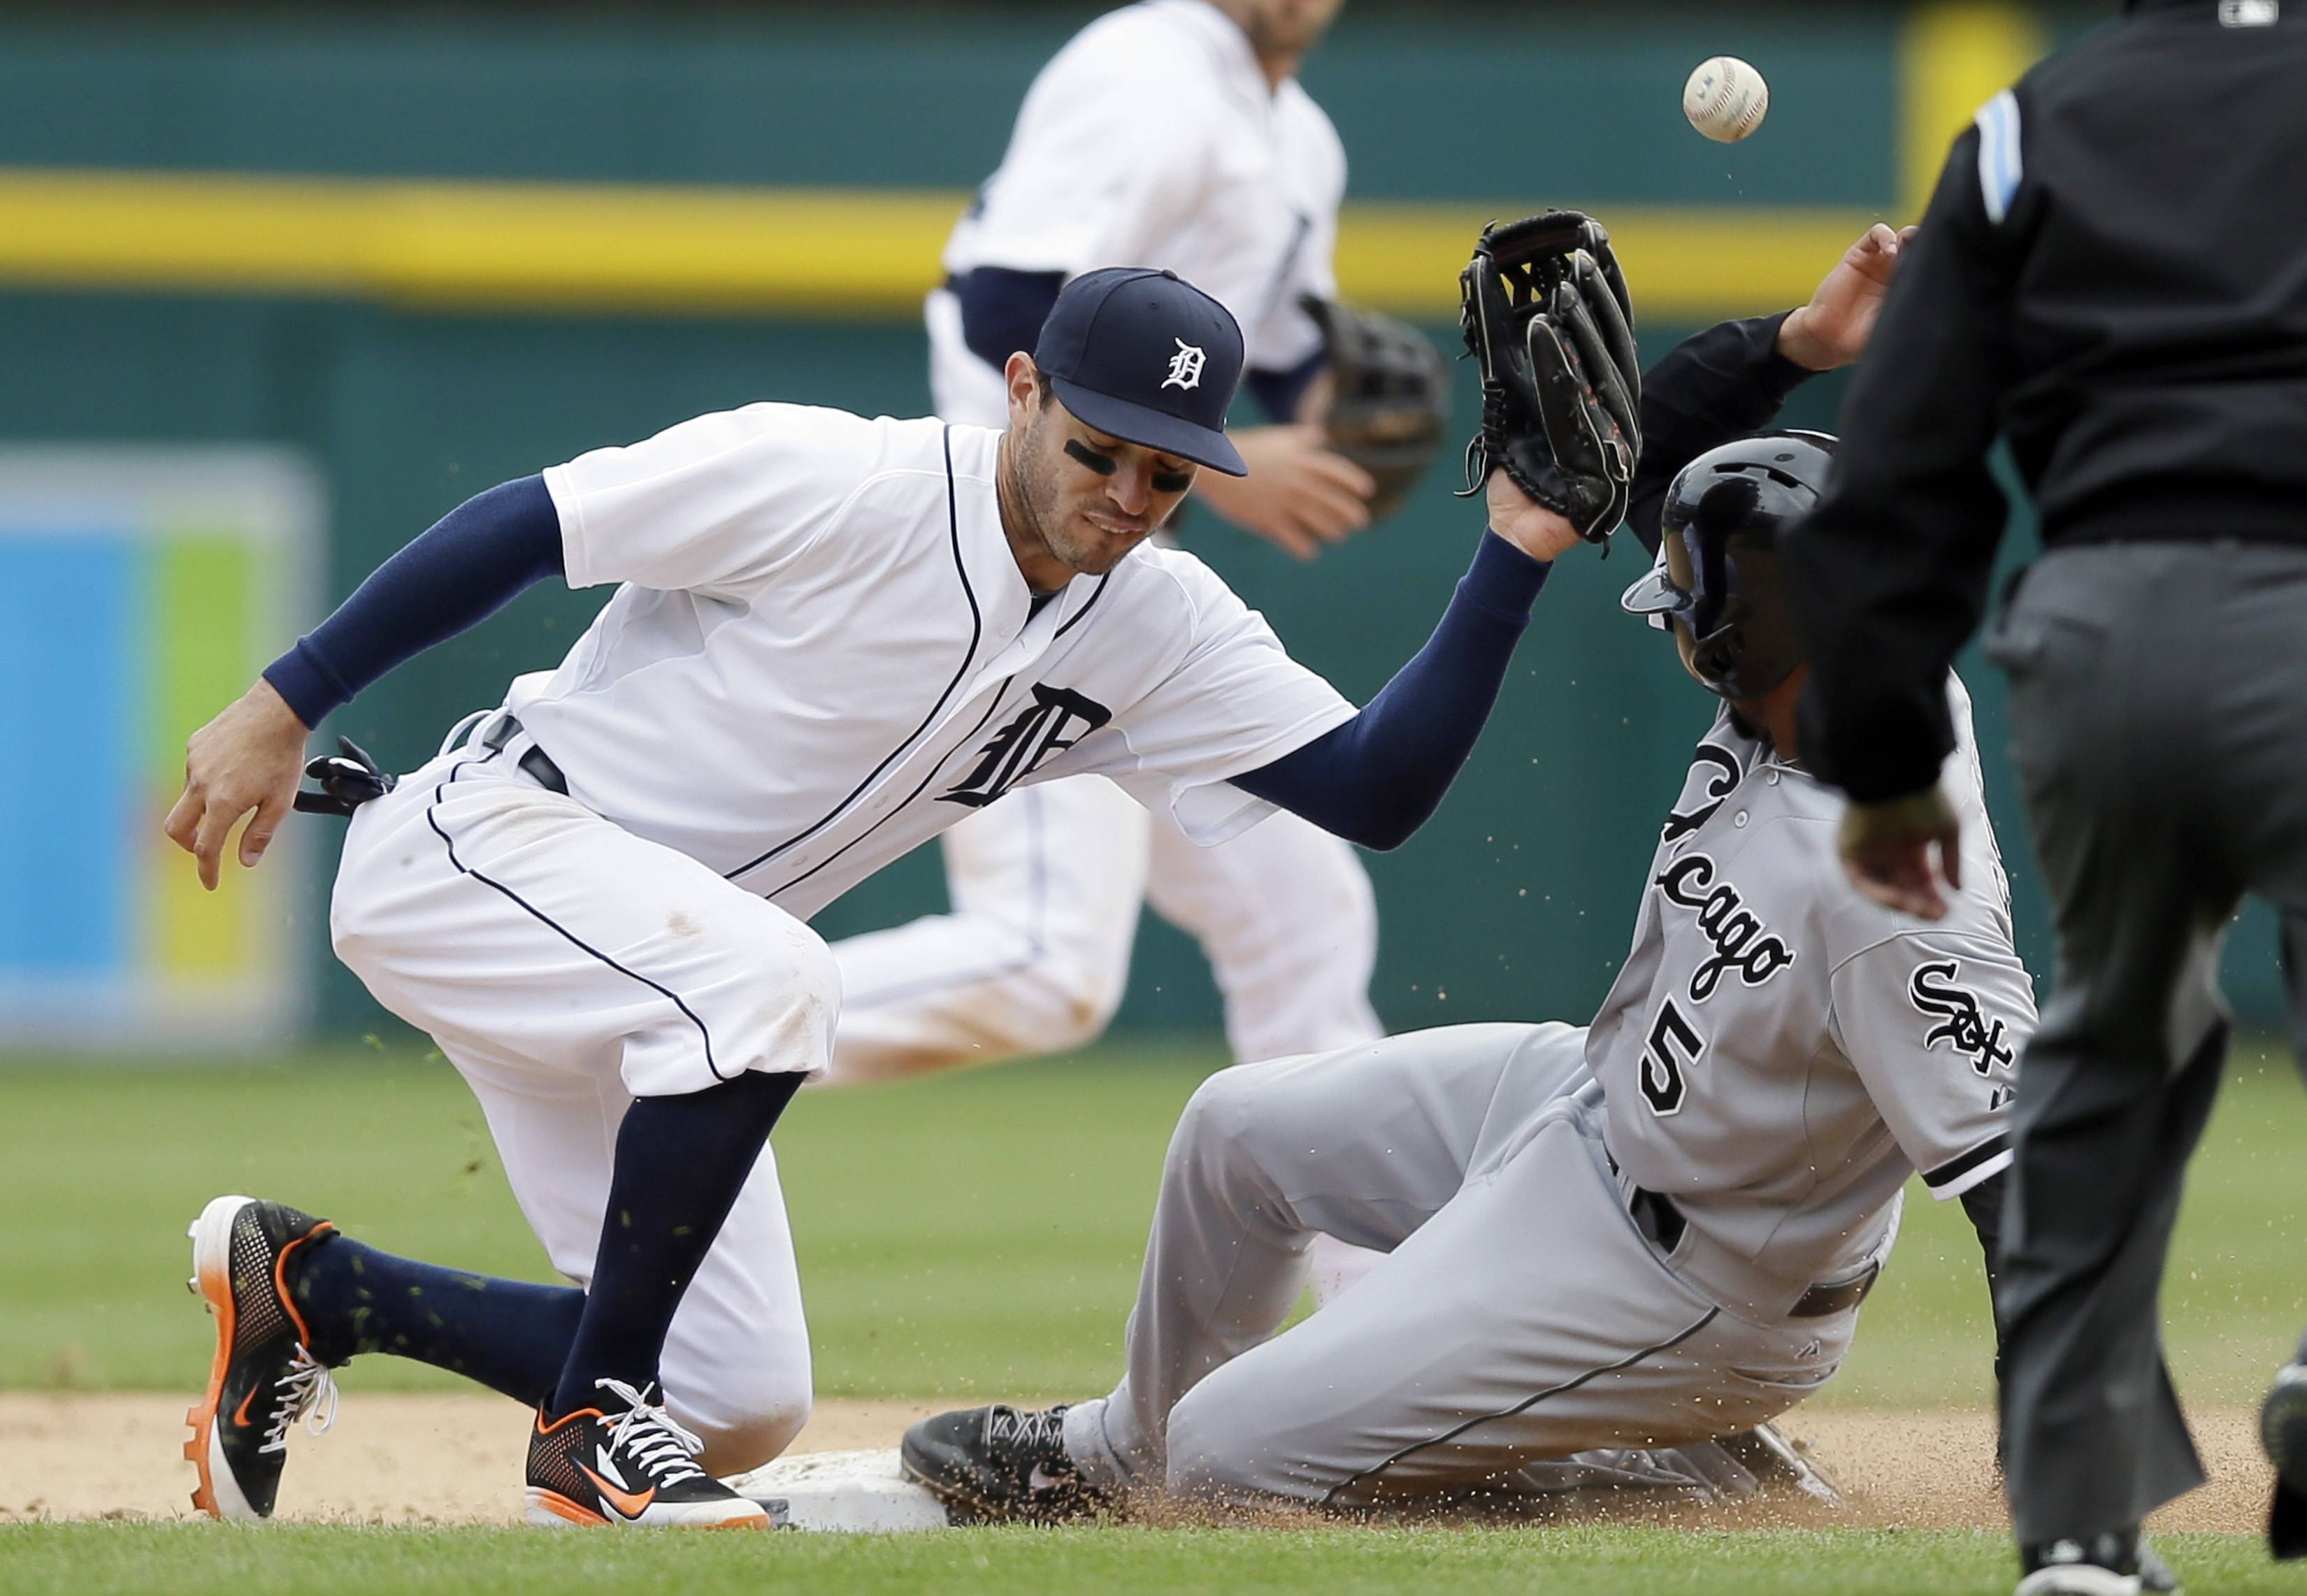 Detroit Tigers second baseman Ian Kinsler bobbles the ball as Chicago White Sox's Marcus Semien slides into second during the ninth inning of a baseball game in Detroit, Thursday, April 24, 2014. Semien was called out because of batter interference by Jose Abreu. The Tigers won 7-4. (AP Photo/Carlos Osorio)